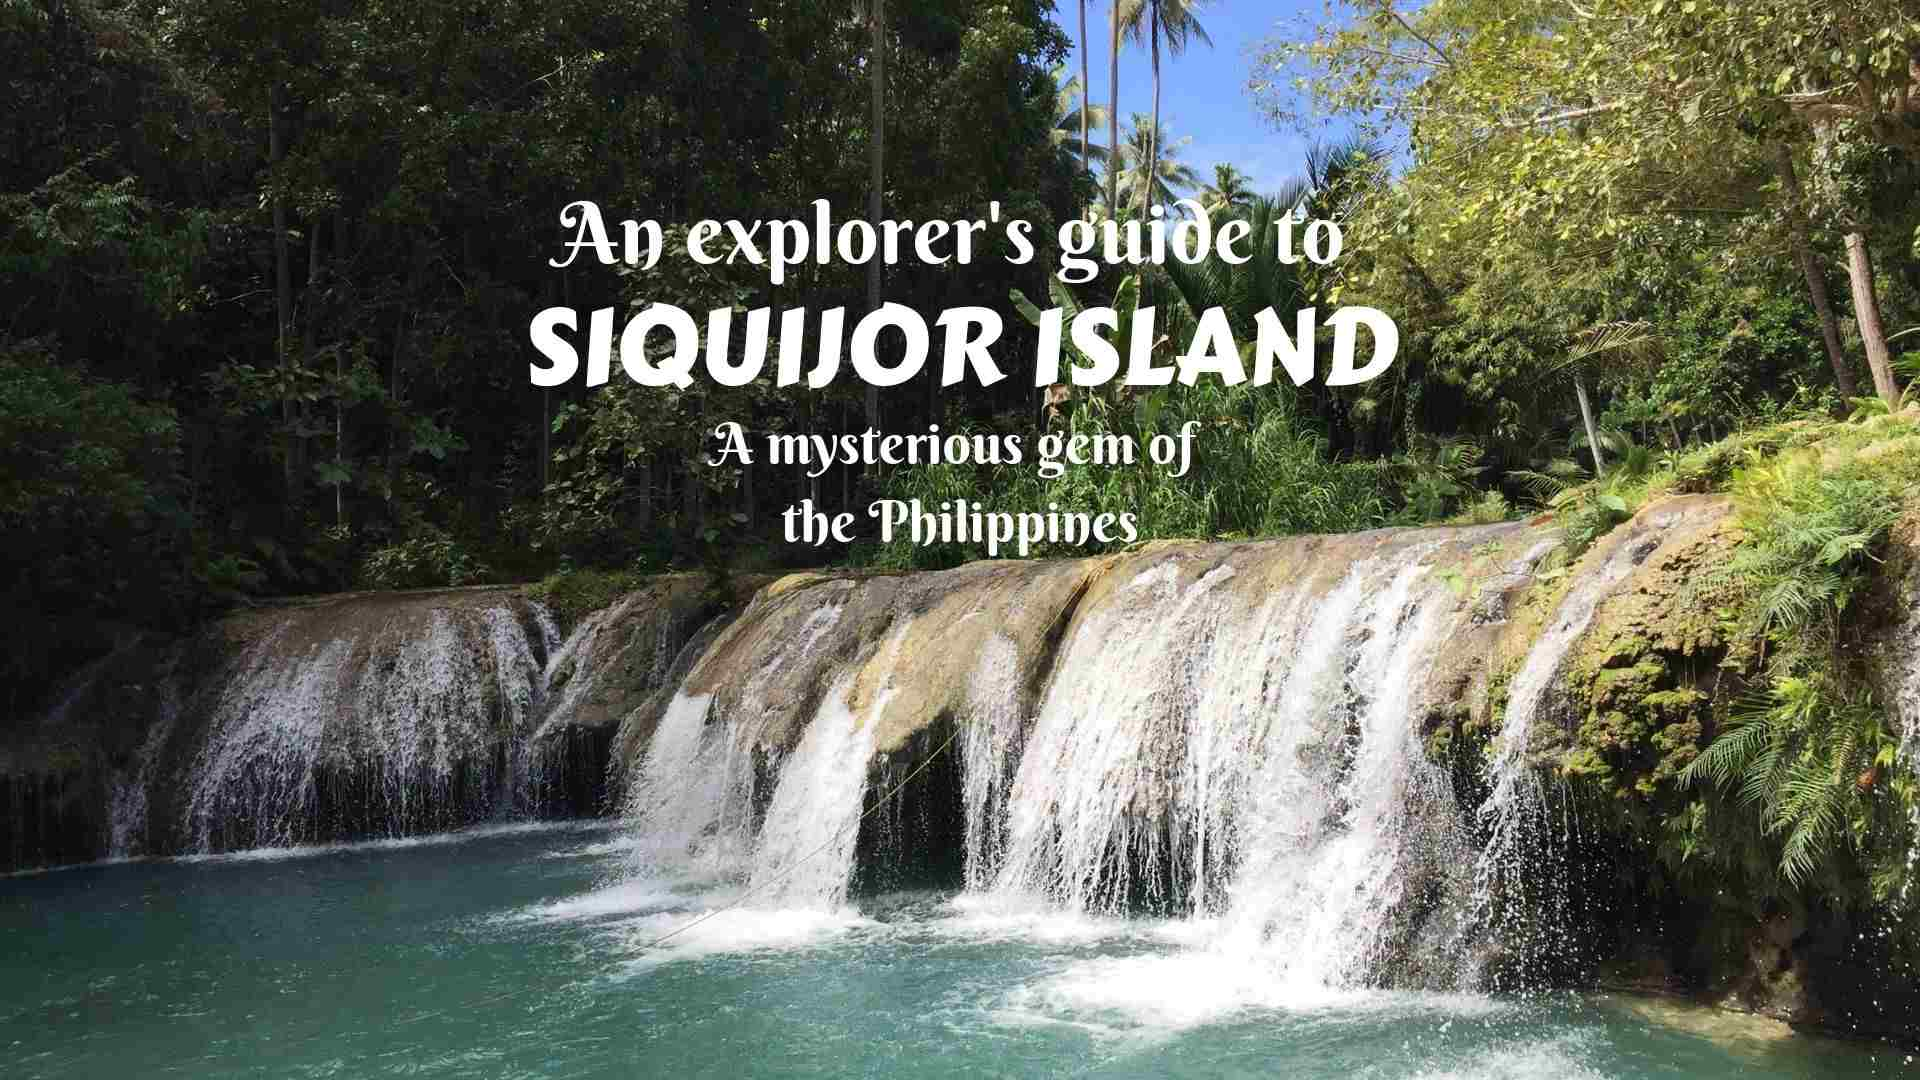 An explorer's guide to Siquijor Island- a mysterious gem of the Philippines